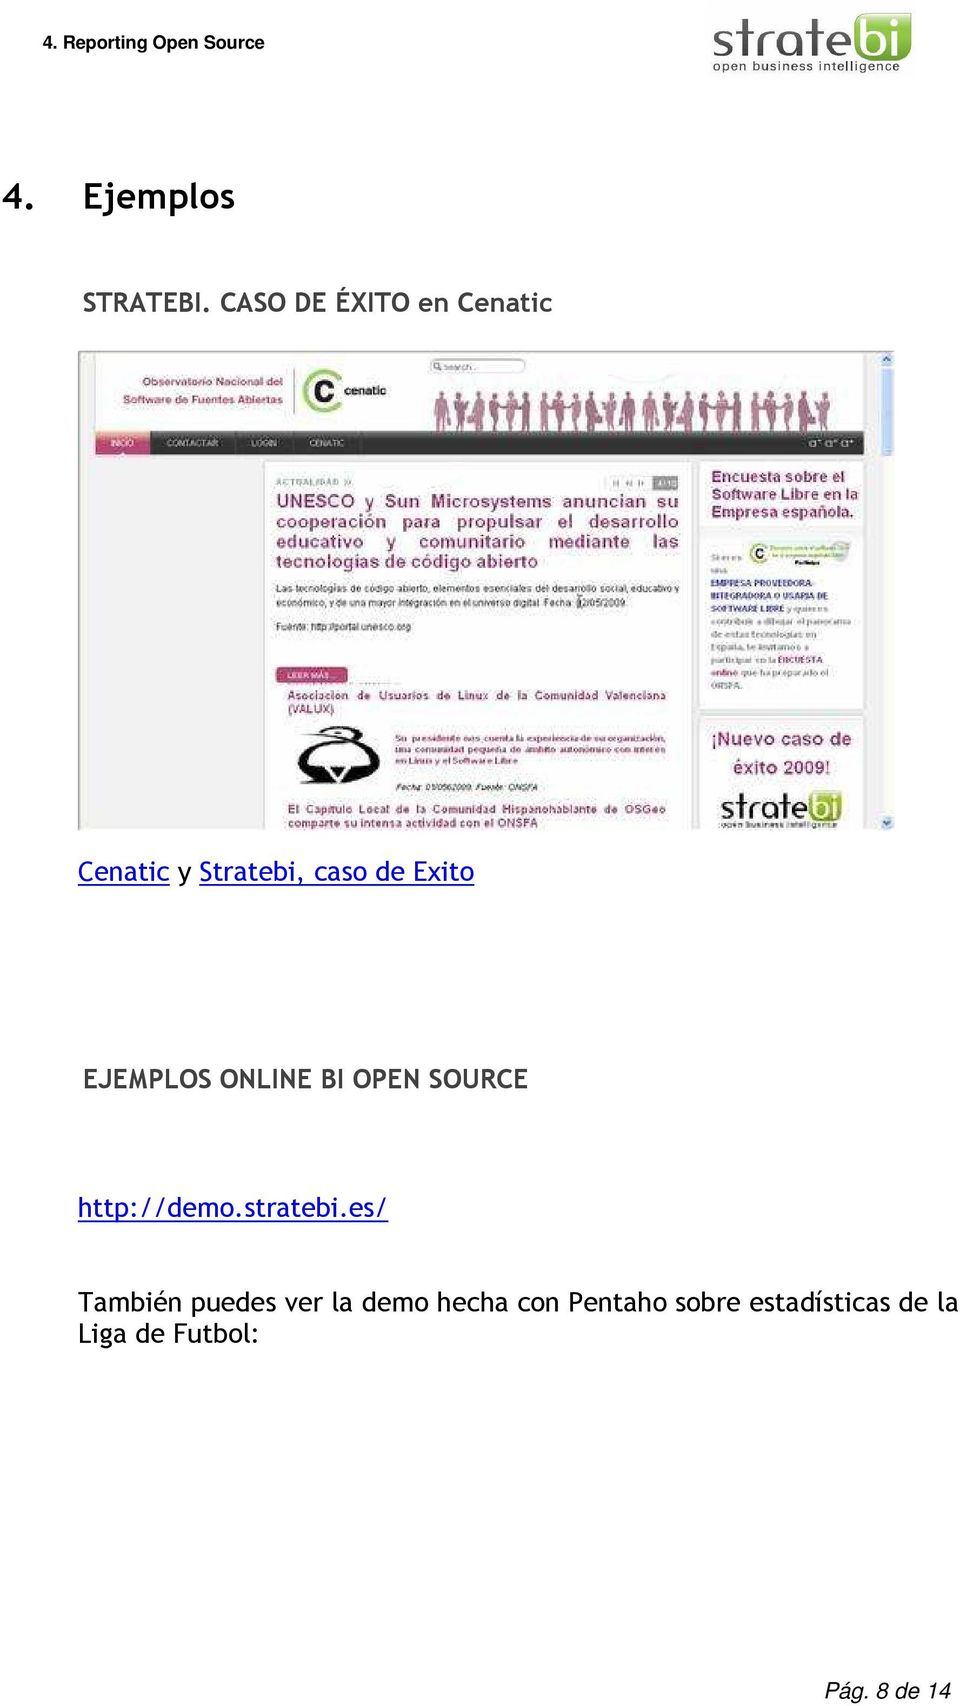 EJEMPLOS ONLINE BI OPEN SOURCE http://demo.stratebi.